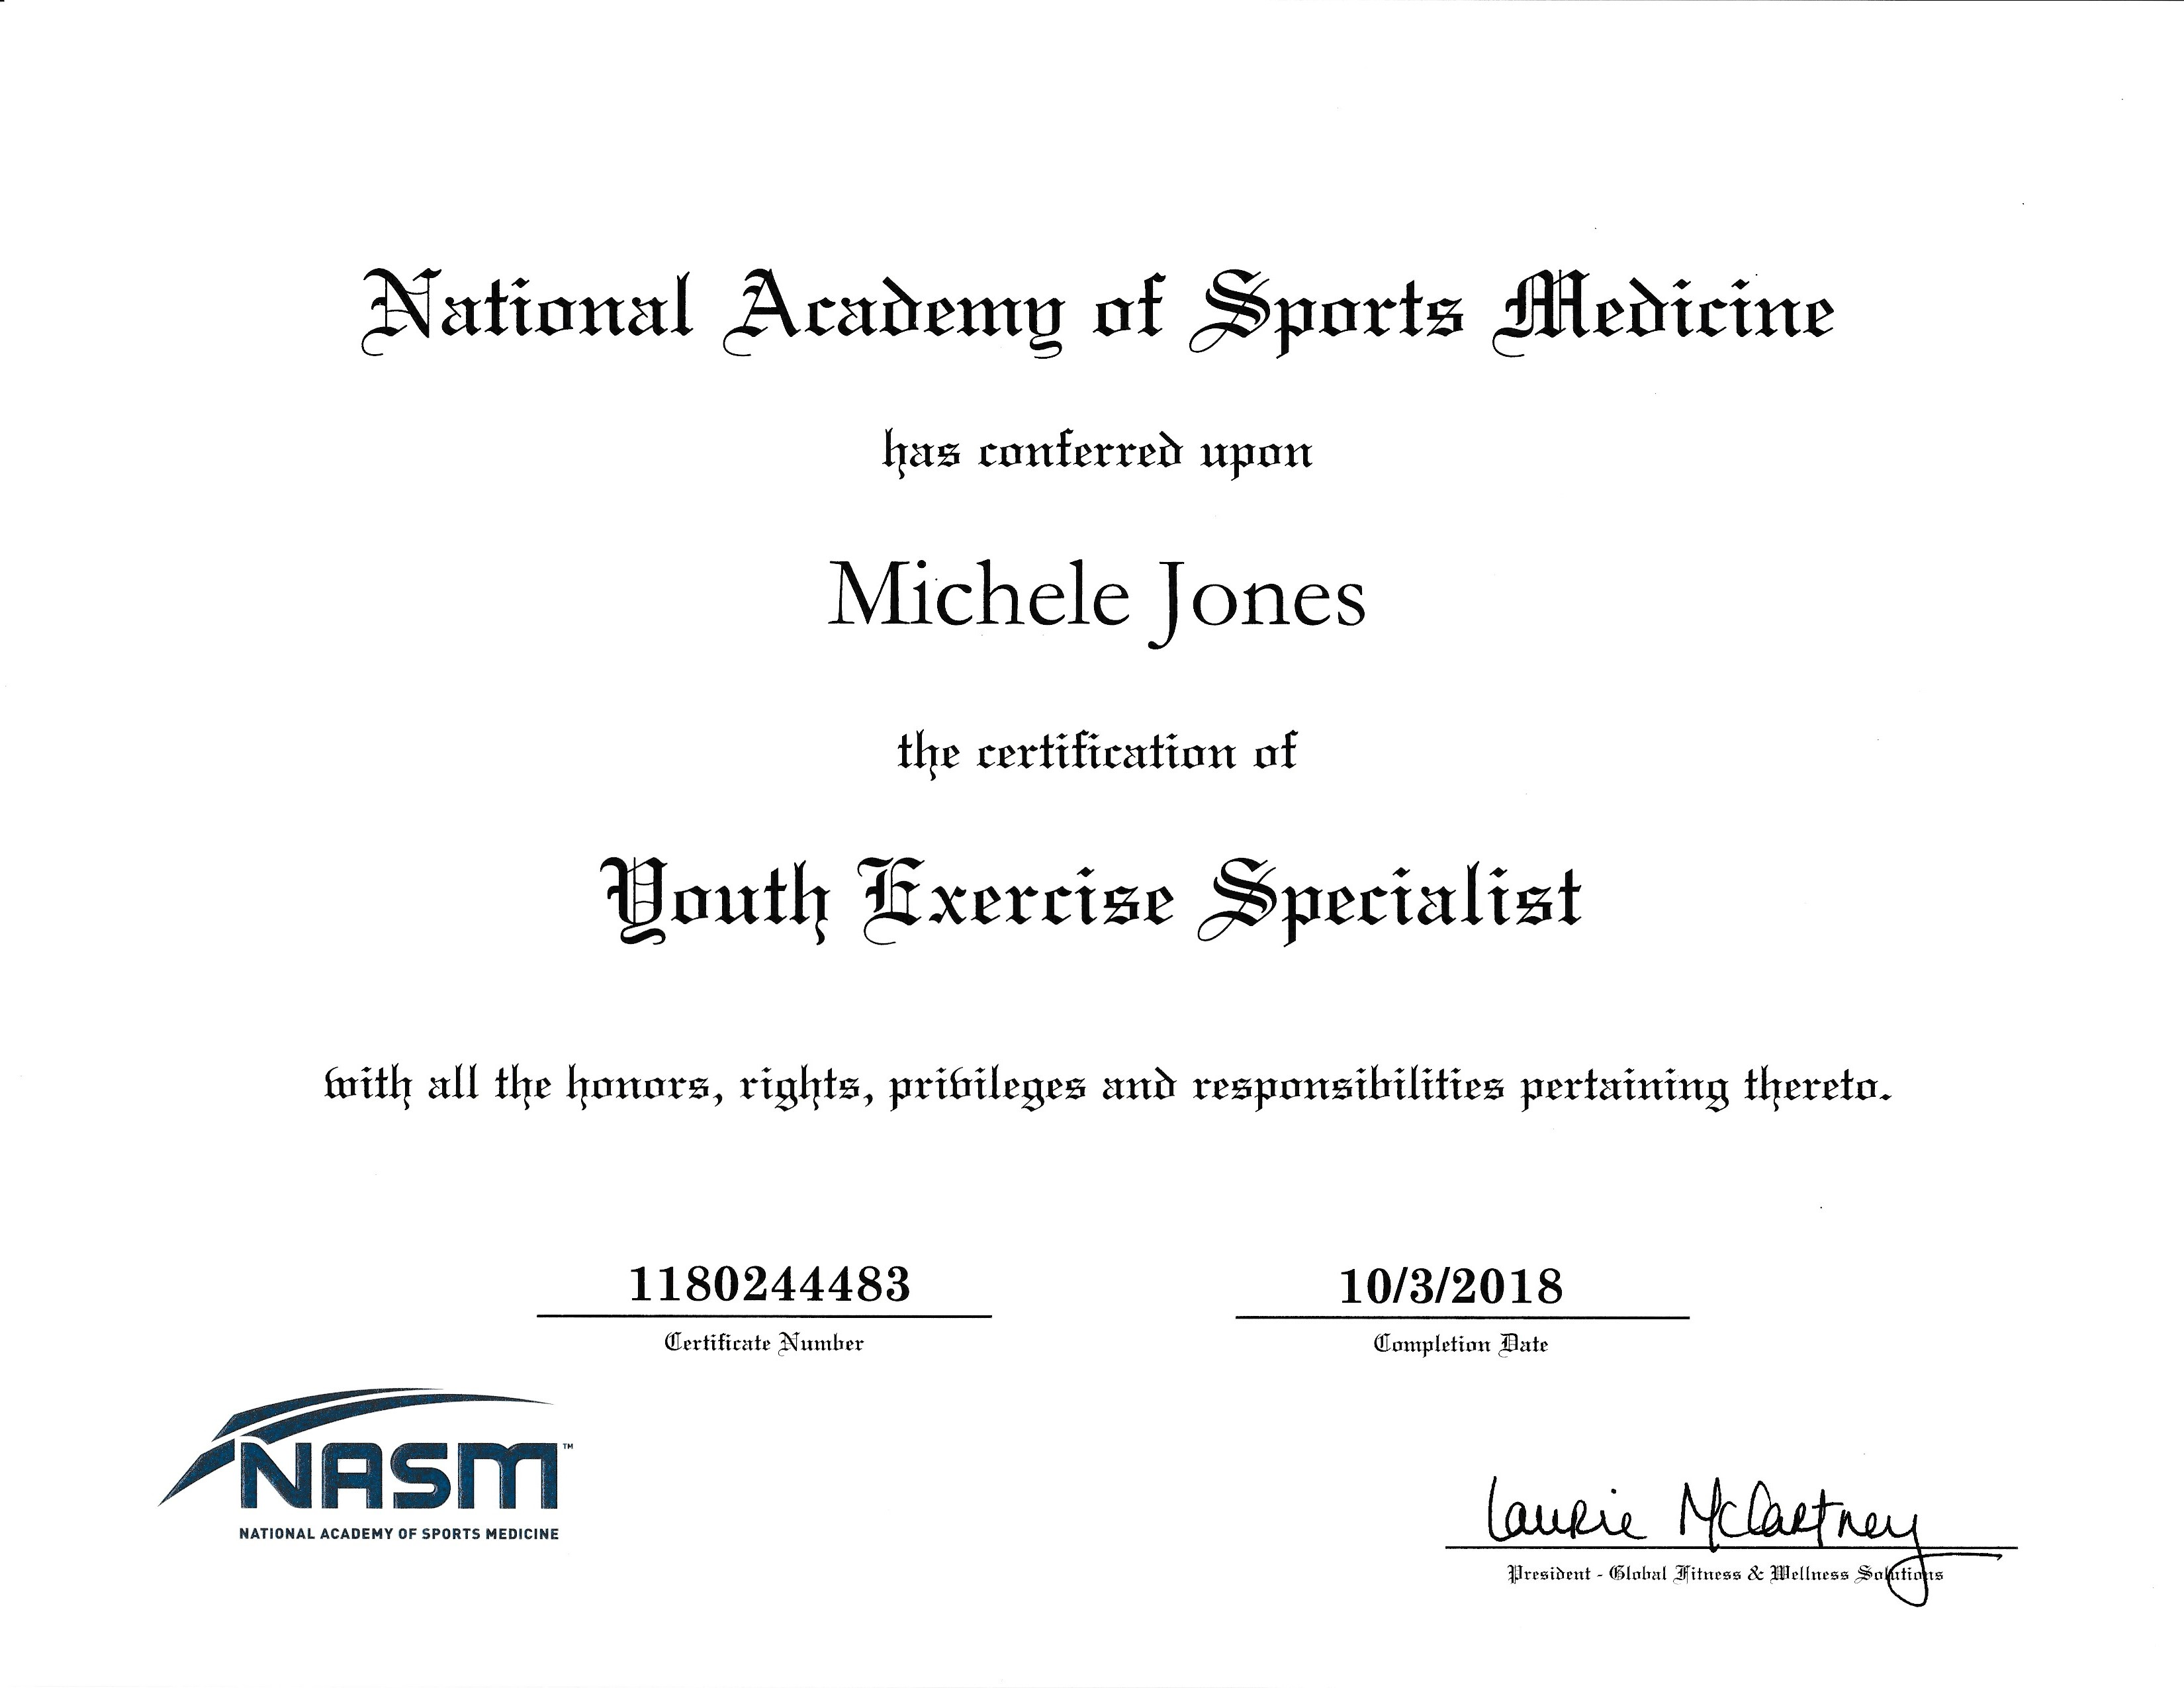 NASM-YES Certificate